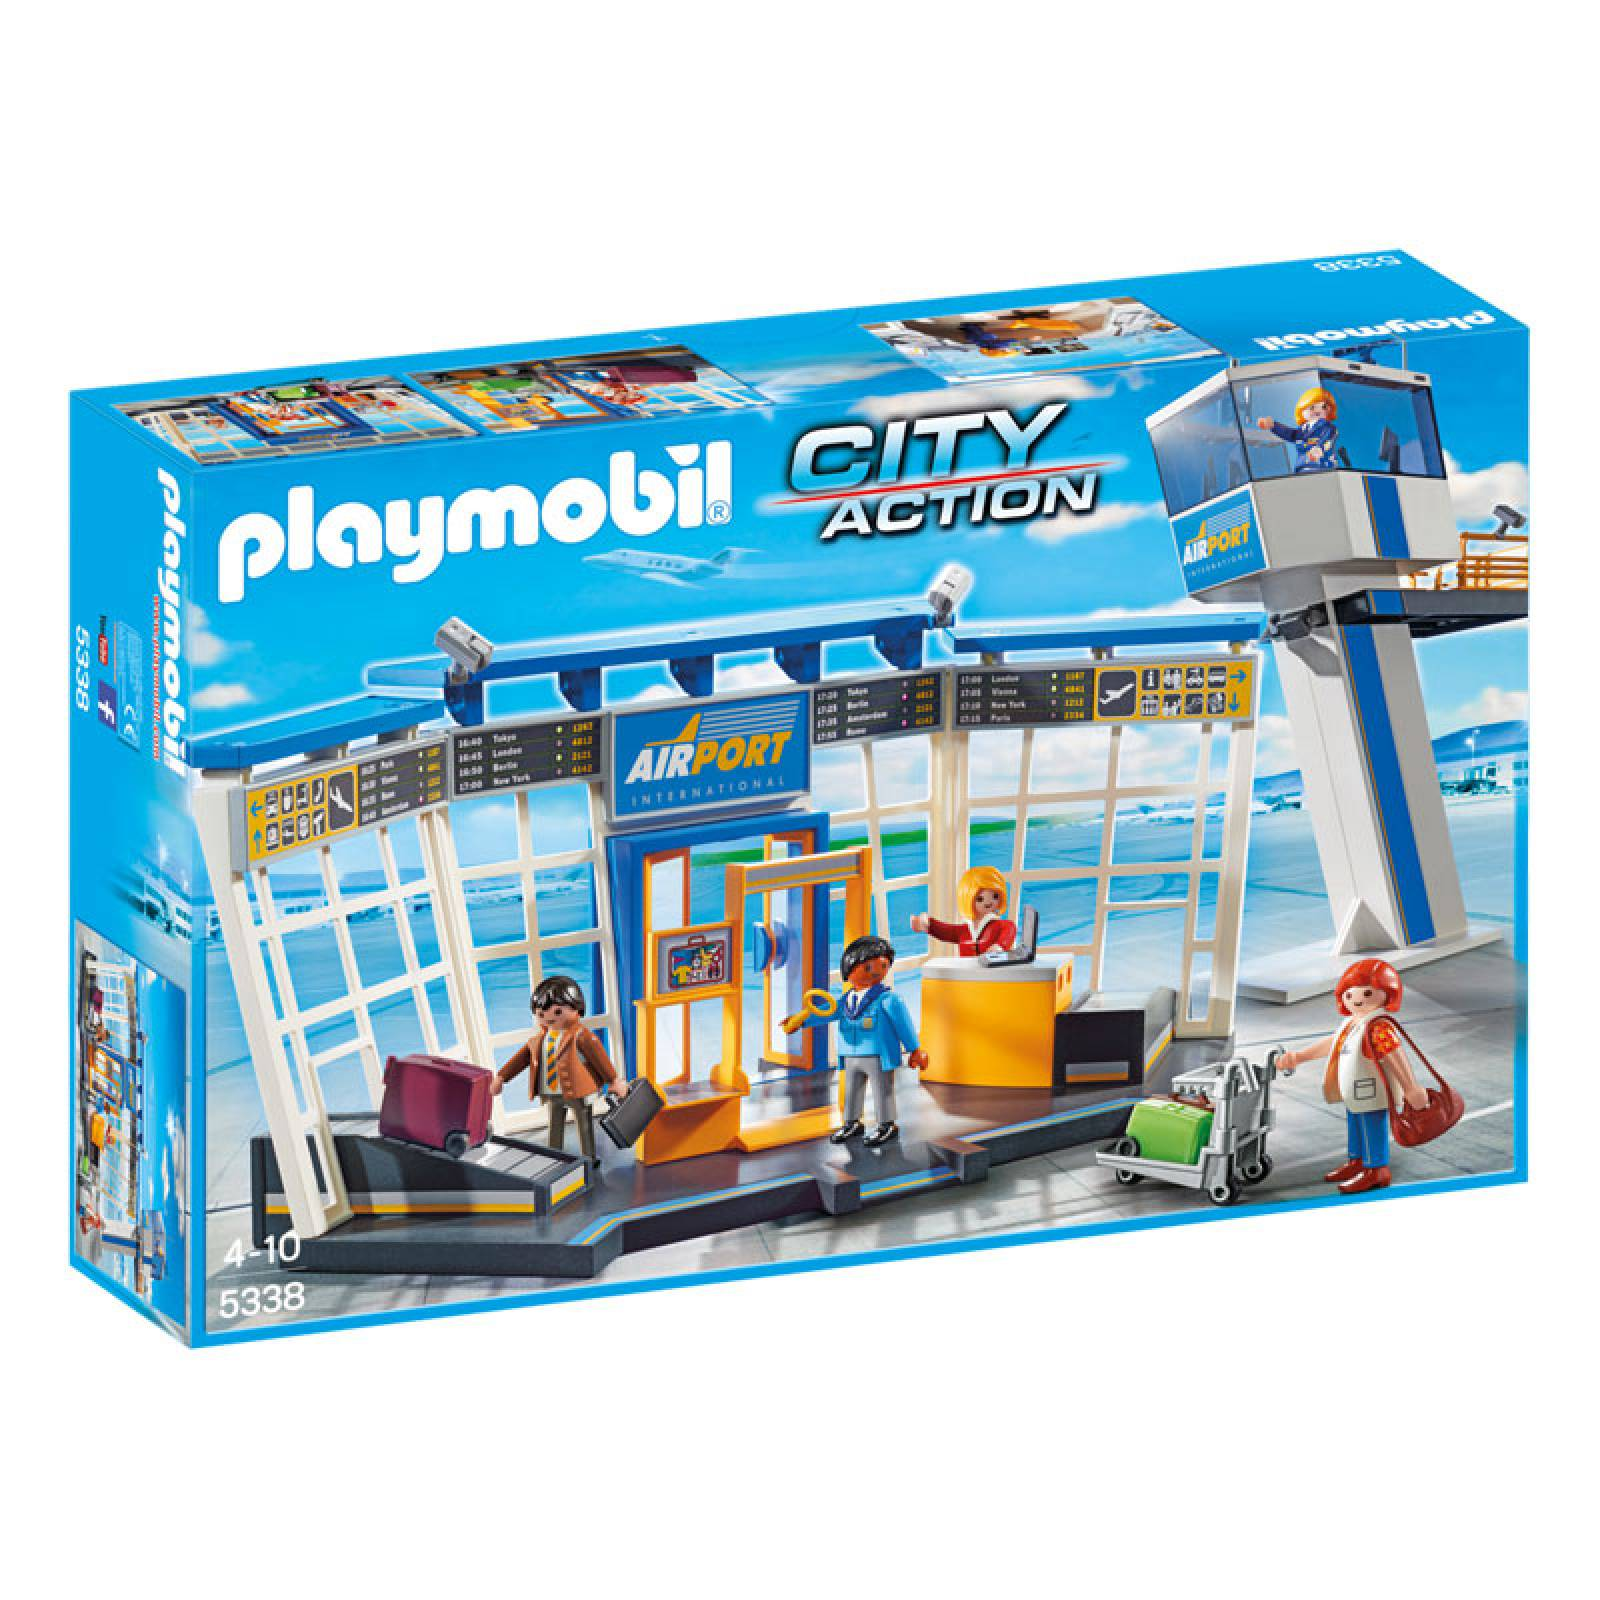 Airport With Control Tower Playmobil City Action 5338 4-10yrs thumbnails